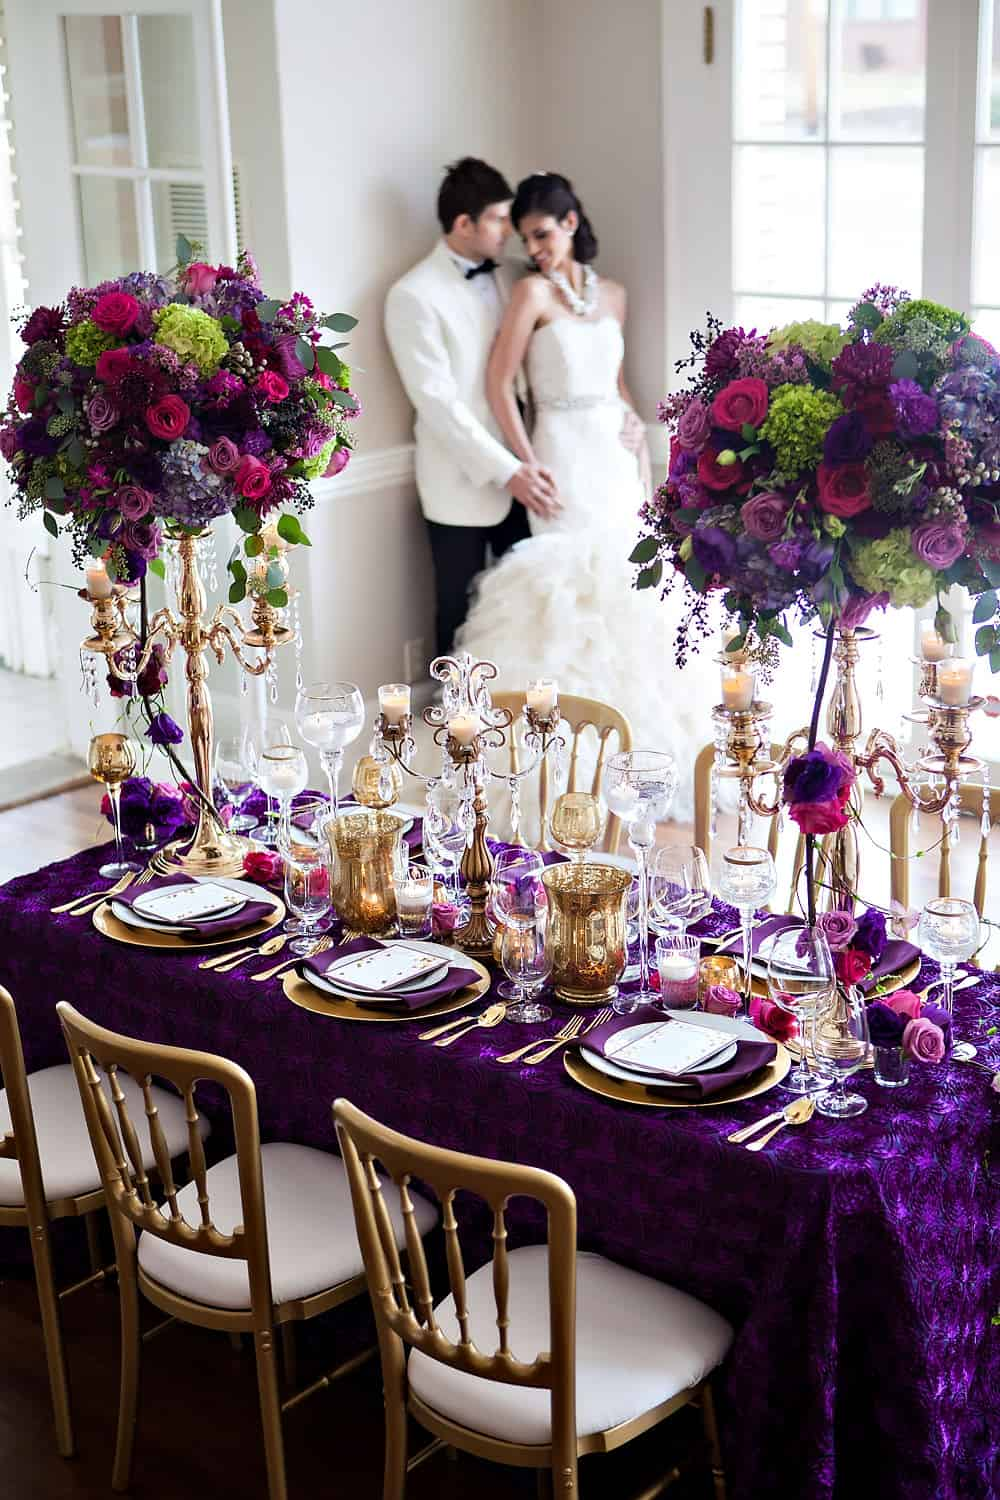 Separk Mansion Wedding U2013 Table Setting Bride Groom2